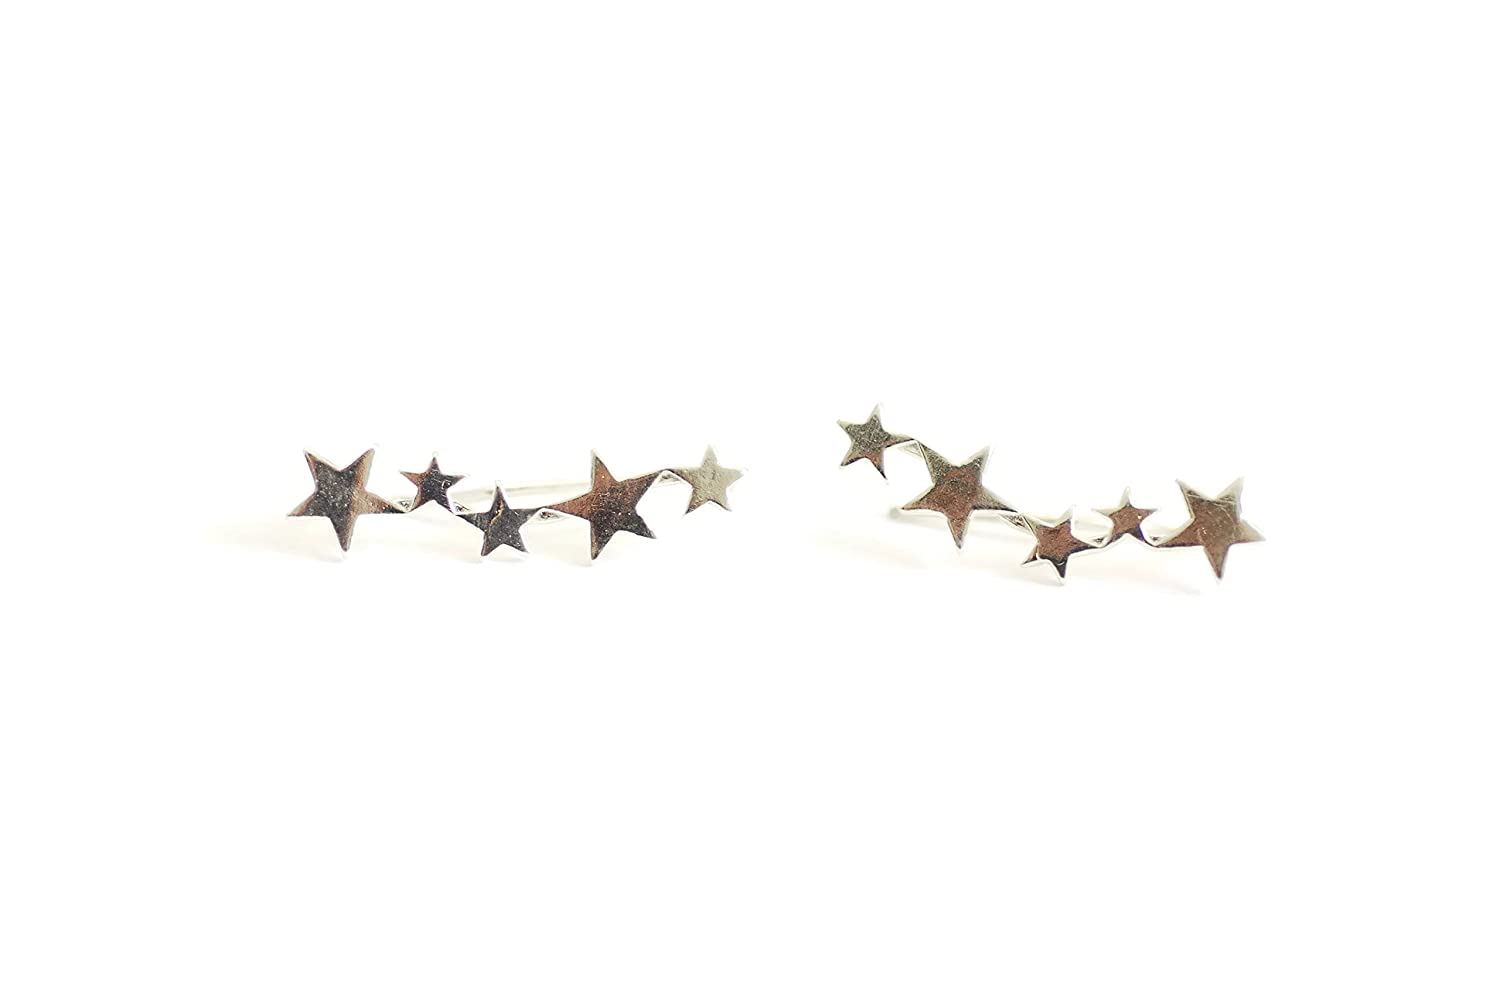 Star Crawler Climber Earrings 925 Sterling Silver Plated with 18K Gold CY Supplies UK/_B0765D7S4L